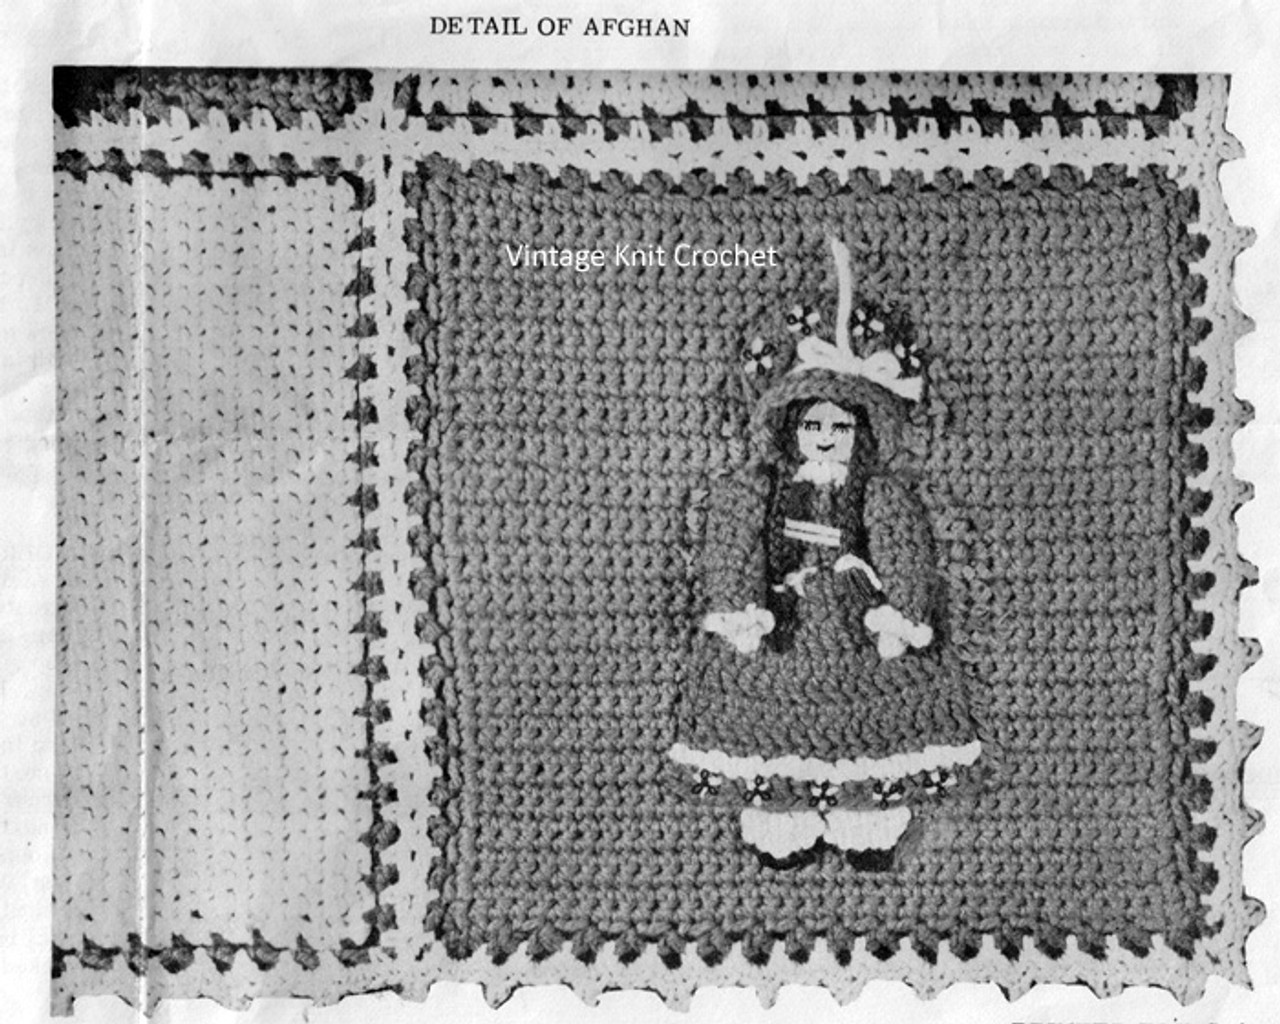 Crochet Doll Applique for Crochet Afghan Pattern No 7319